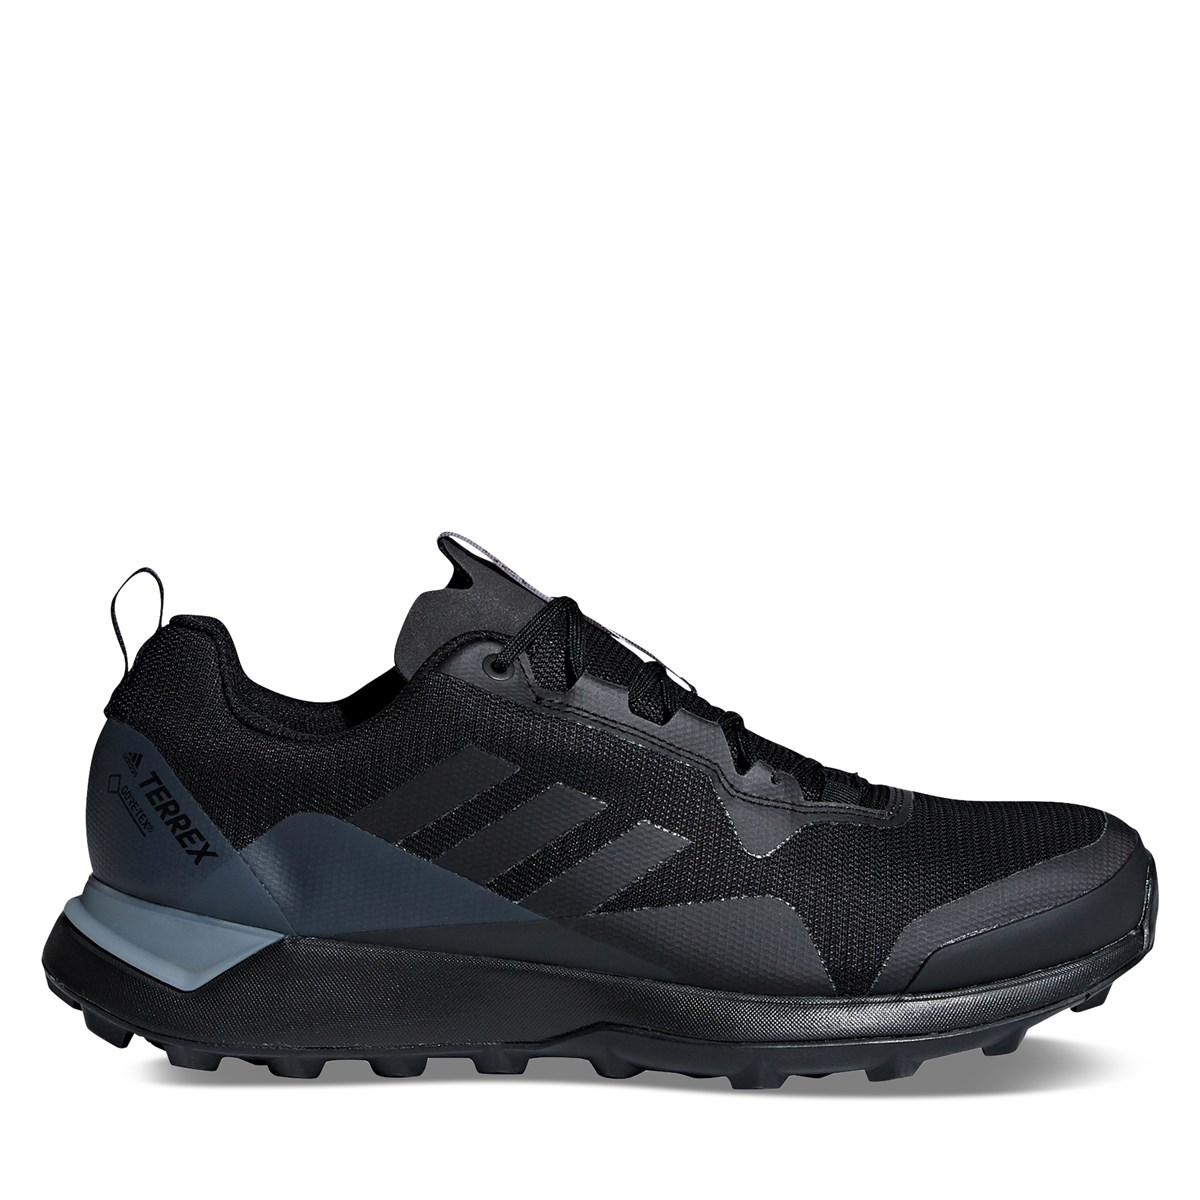 Men's Terrex CMTK GTX Sneakers in Black